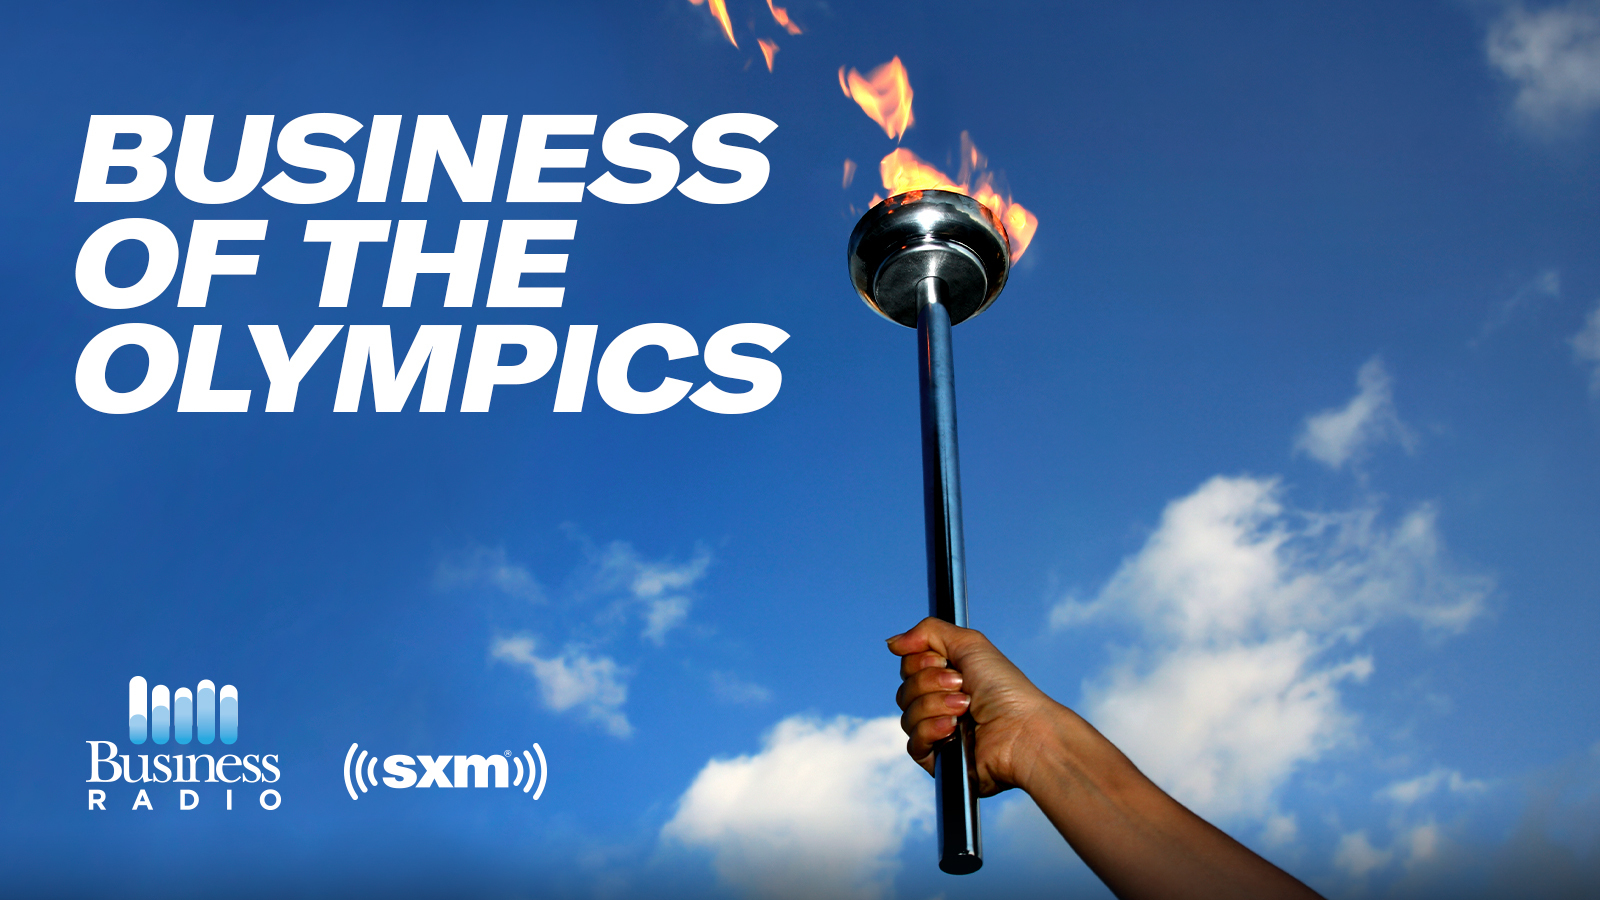 Dive into the business of the Olympics with Olympians, event sponsors & more experts